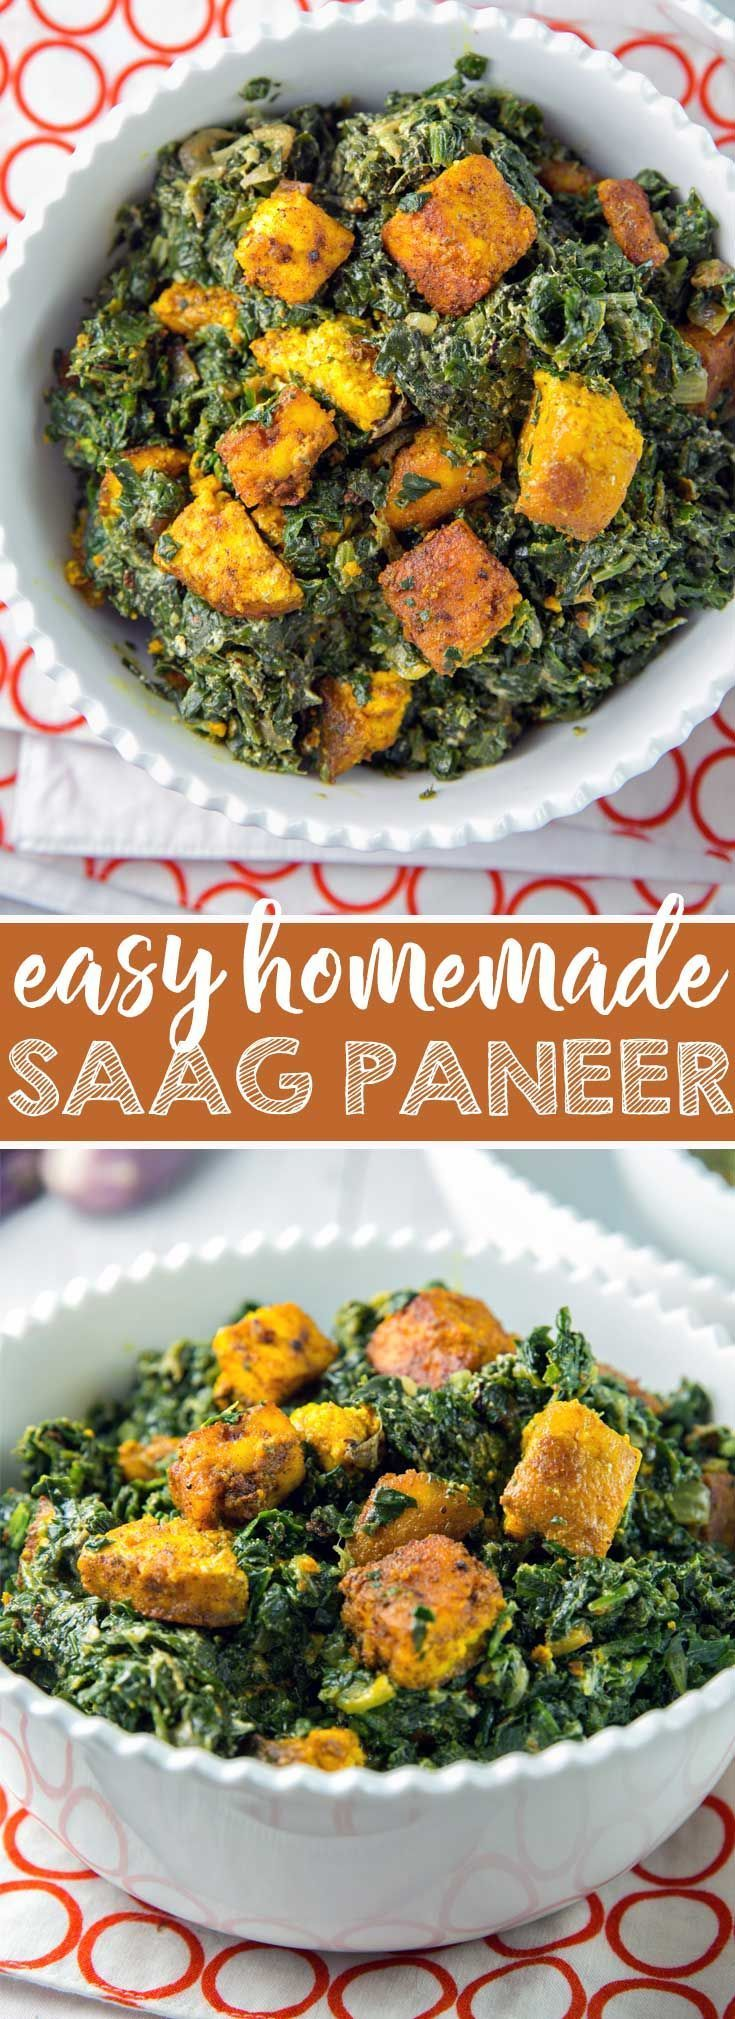 Easy Homemade Saag Panner: Make your own Indian food at home with this easy saag paneer recipe, plus substitutions if you have difficulties finding paneer. {Bunsen Burner Bakery} #saagpaneer #indian #vegetarian #glutenfree via @bnsnbrnrbakery #indianvegetarianrecipes